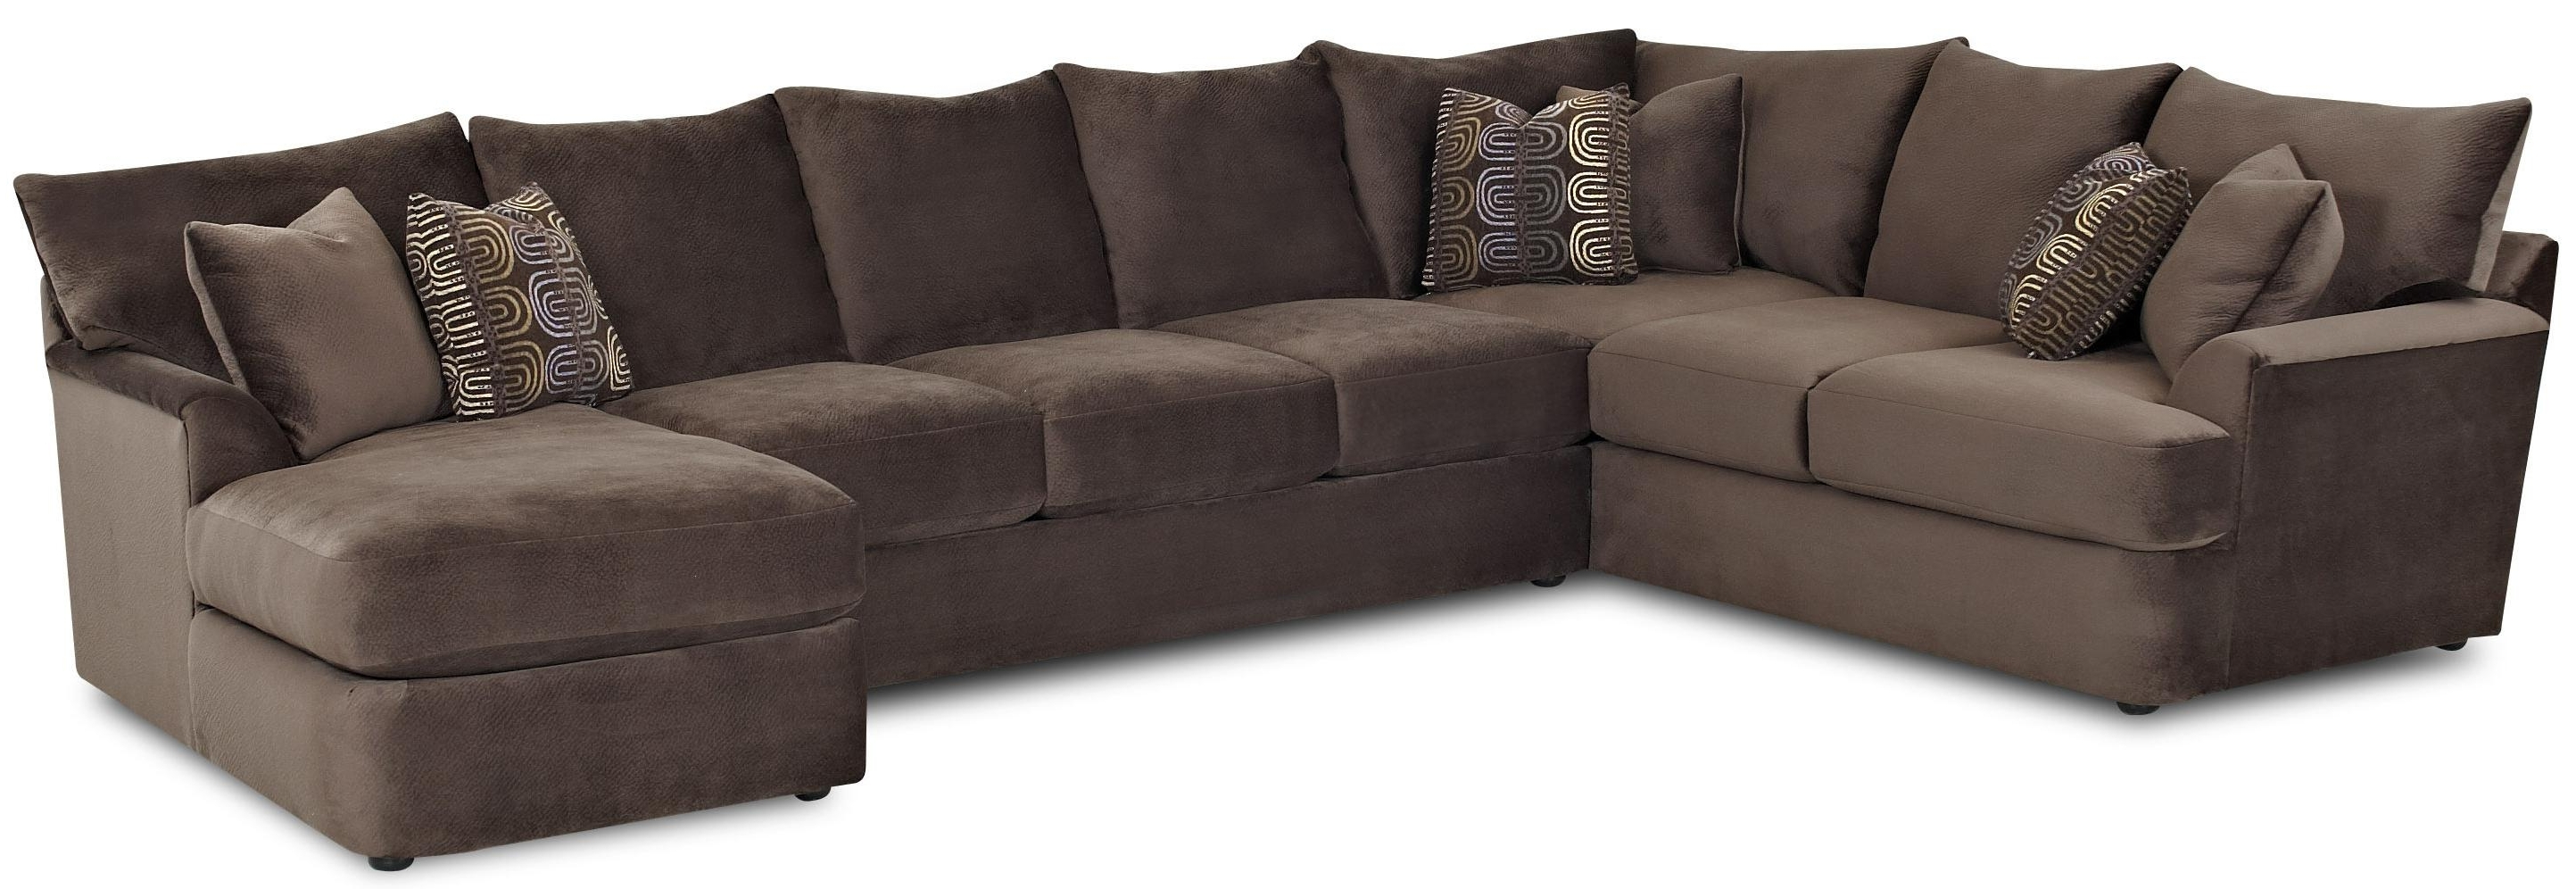 2017 Sectional Sofa Design: L Shaped Sectional Sofa Chaise Covers With L Shaped Sectionals With Chaise (View 1 of 15)